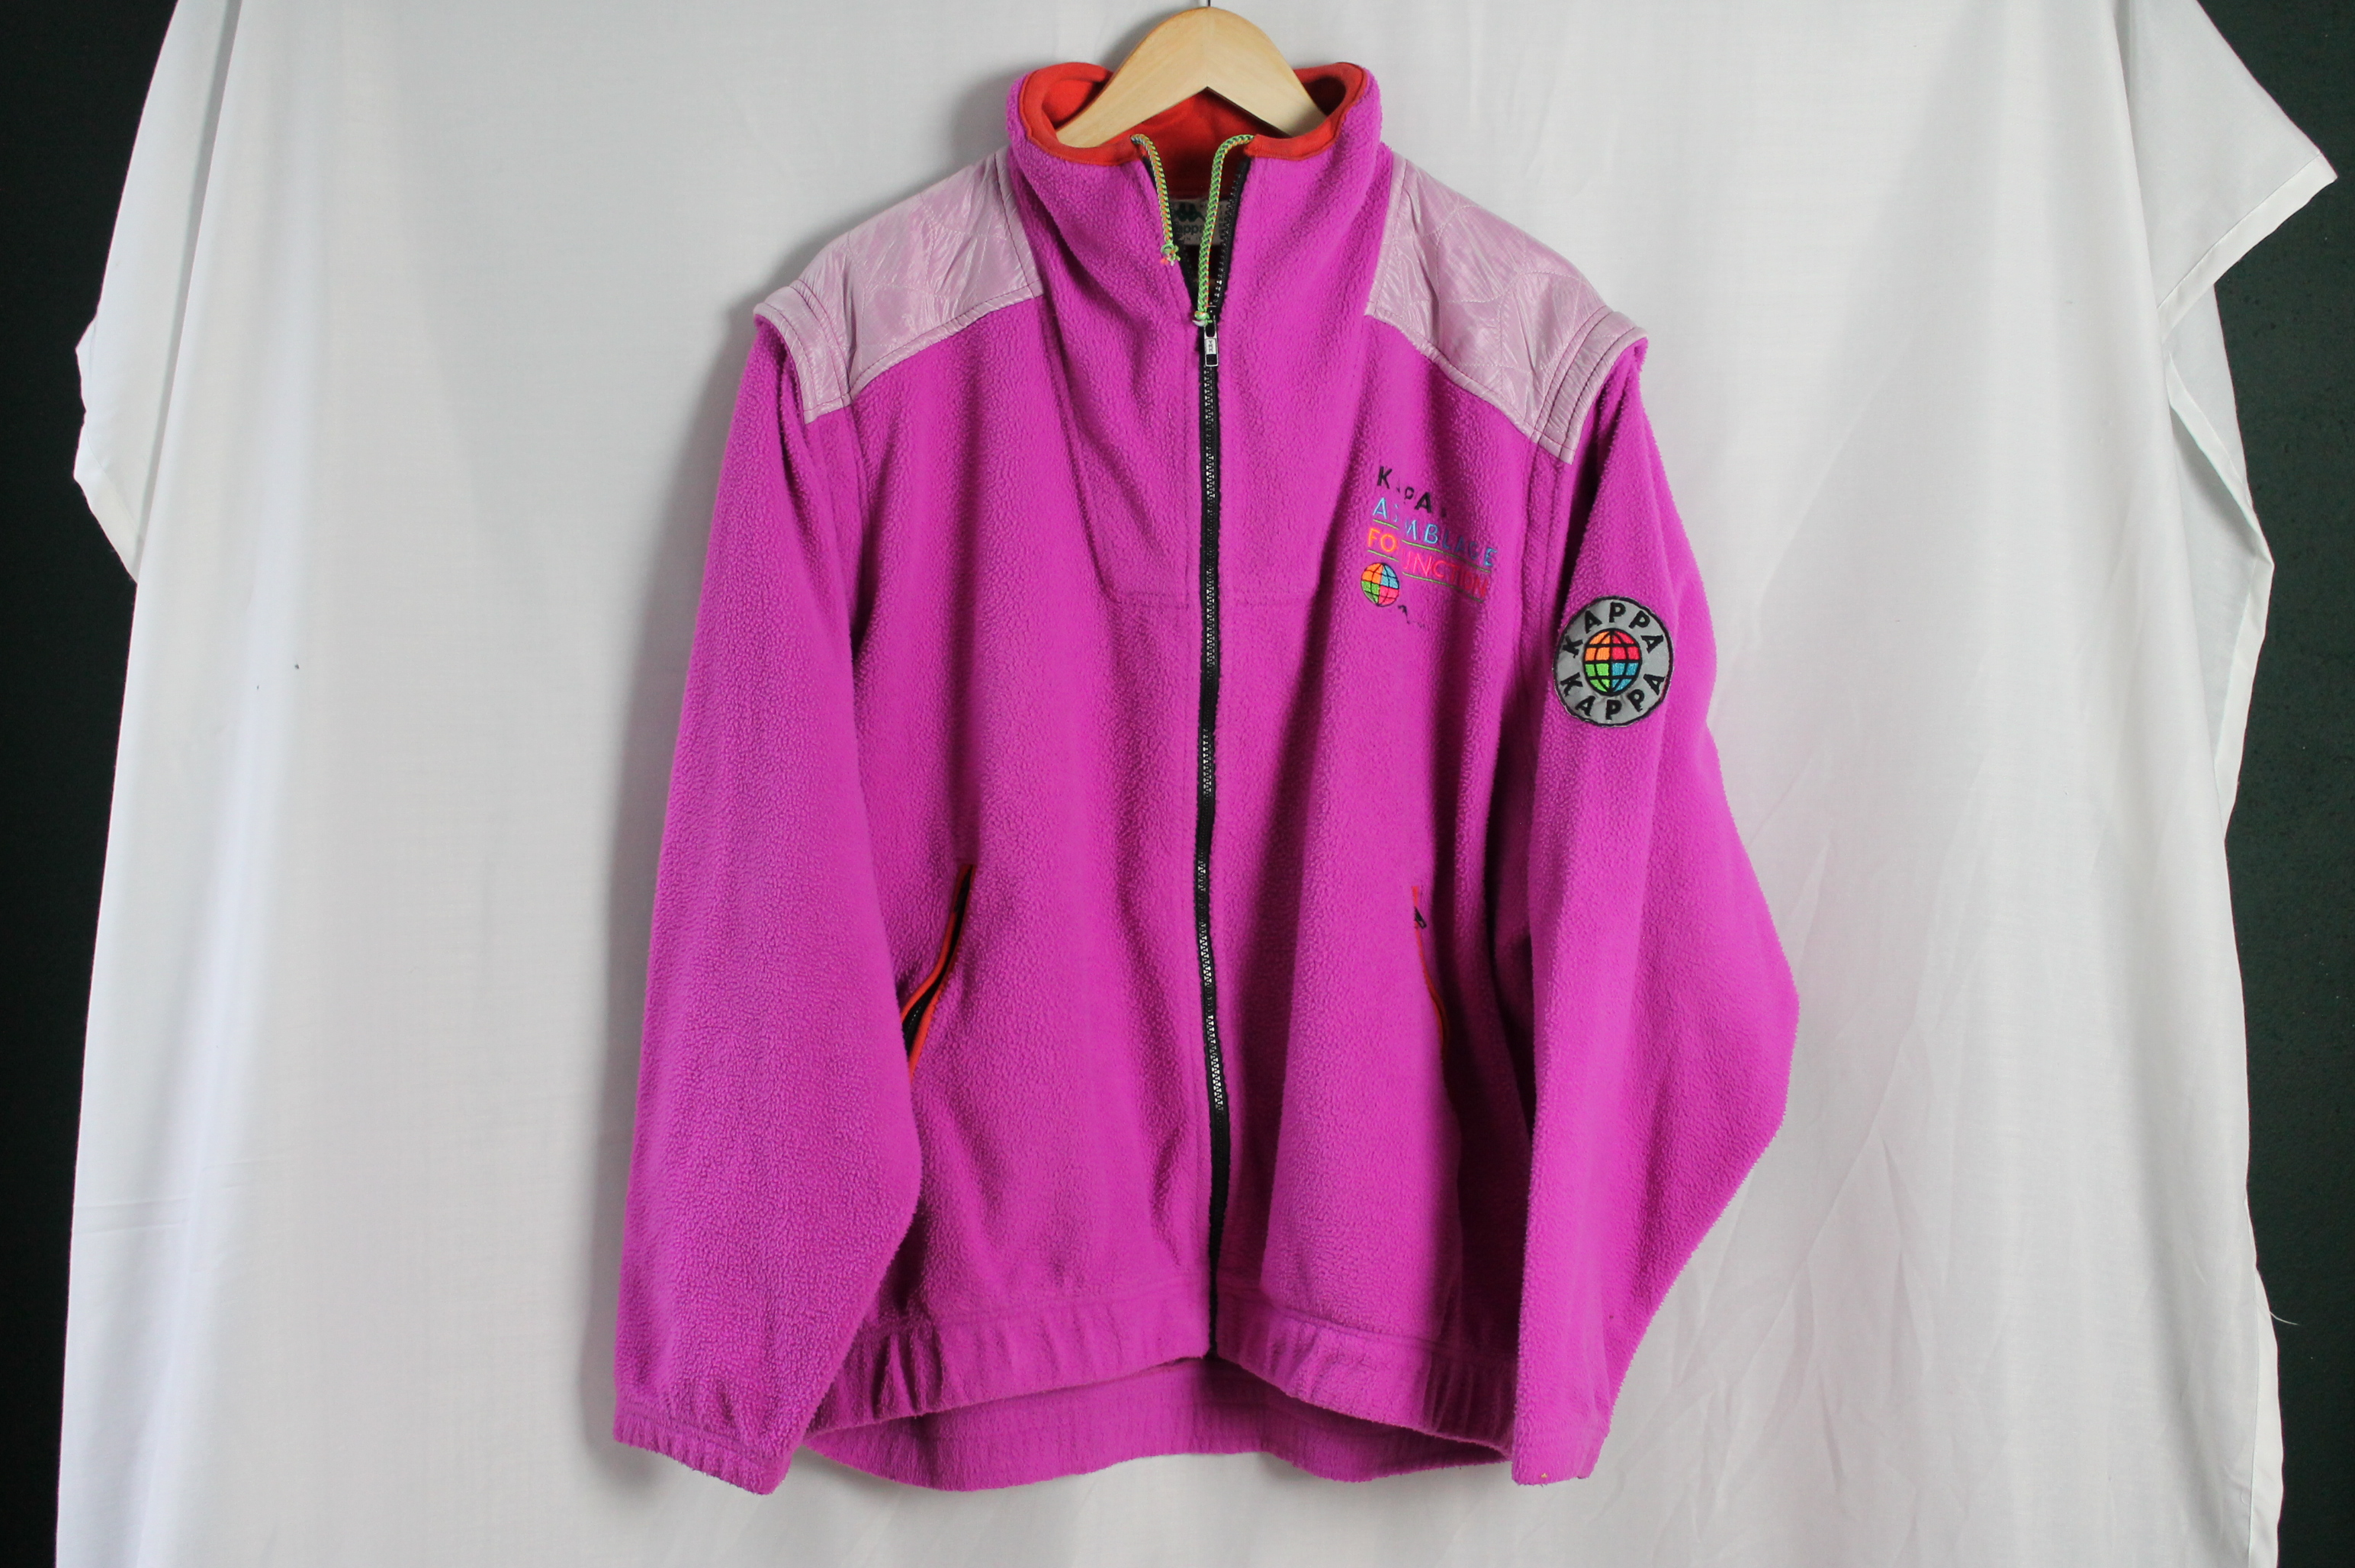 Kappa fleece size man L - XL woman XL